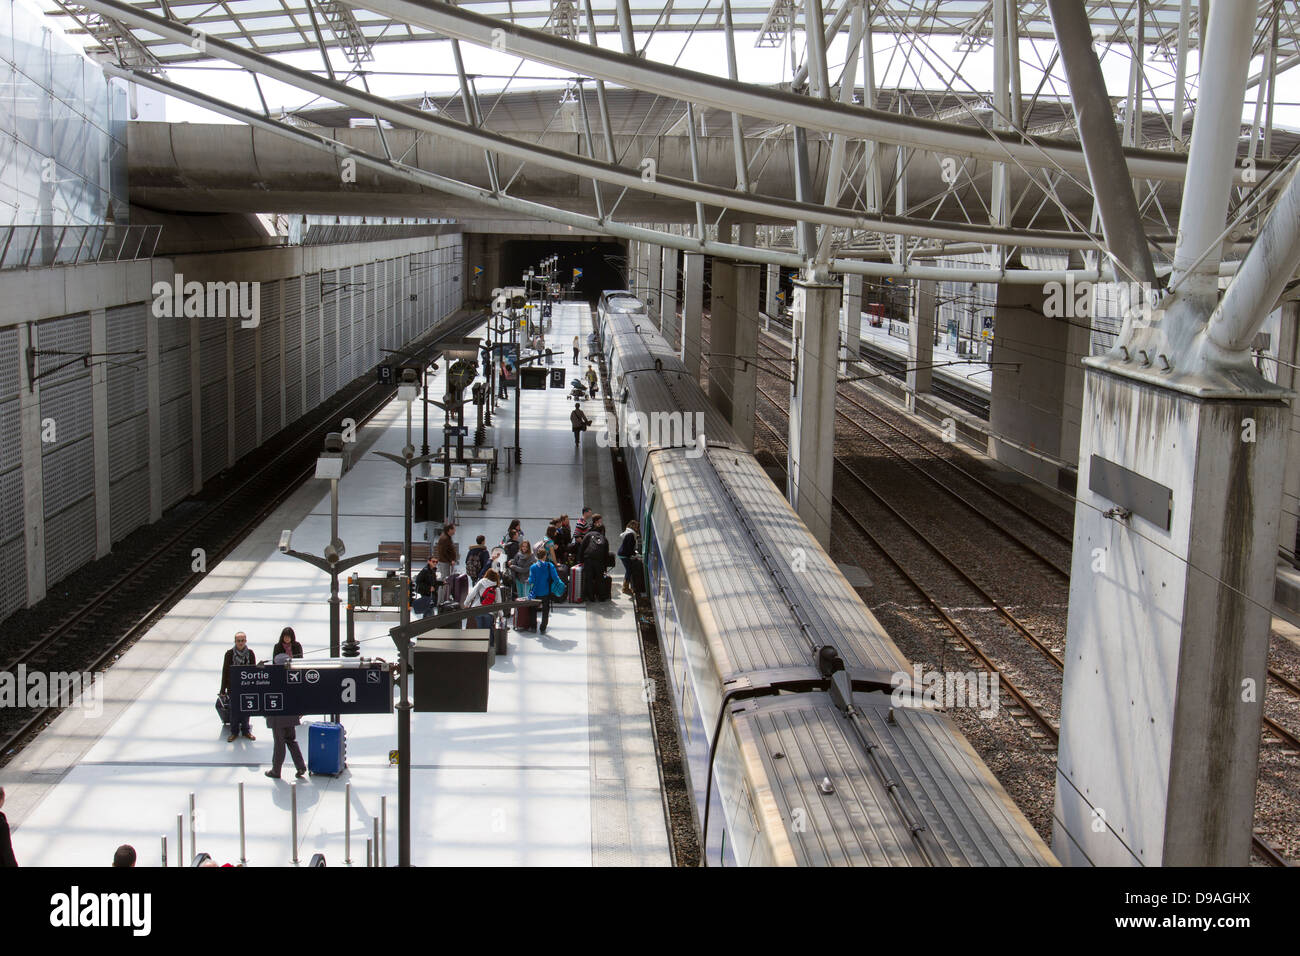 Travelers boarding a train from the platform at Charles de Gaulle Train Station in Paris France - Stock Image